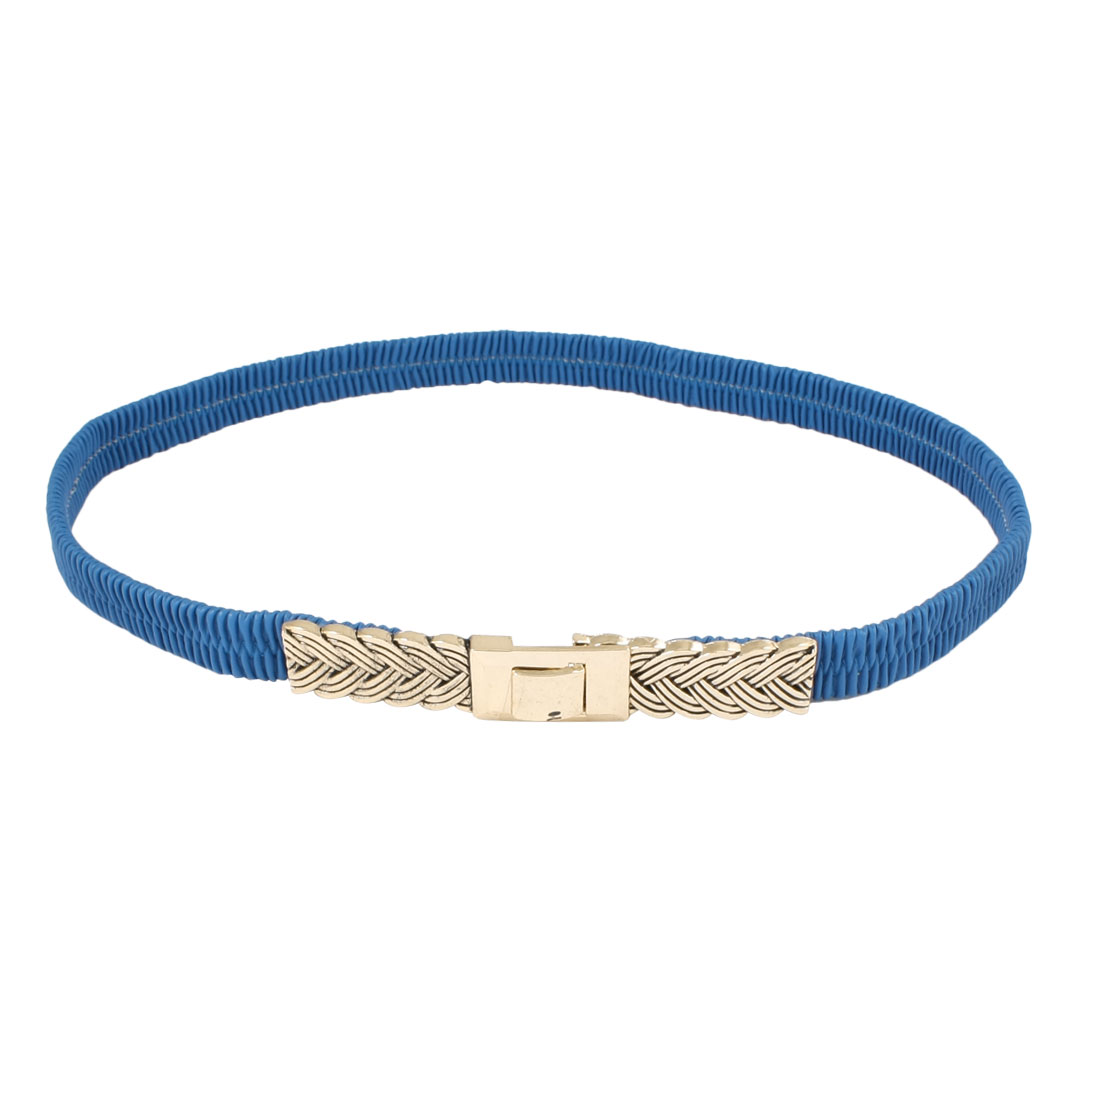 Lady Interlocking Buckle Faux Leather Elastic Dressing Cinch Belt Blue